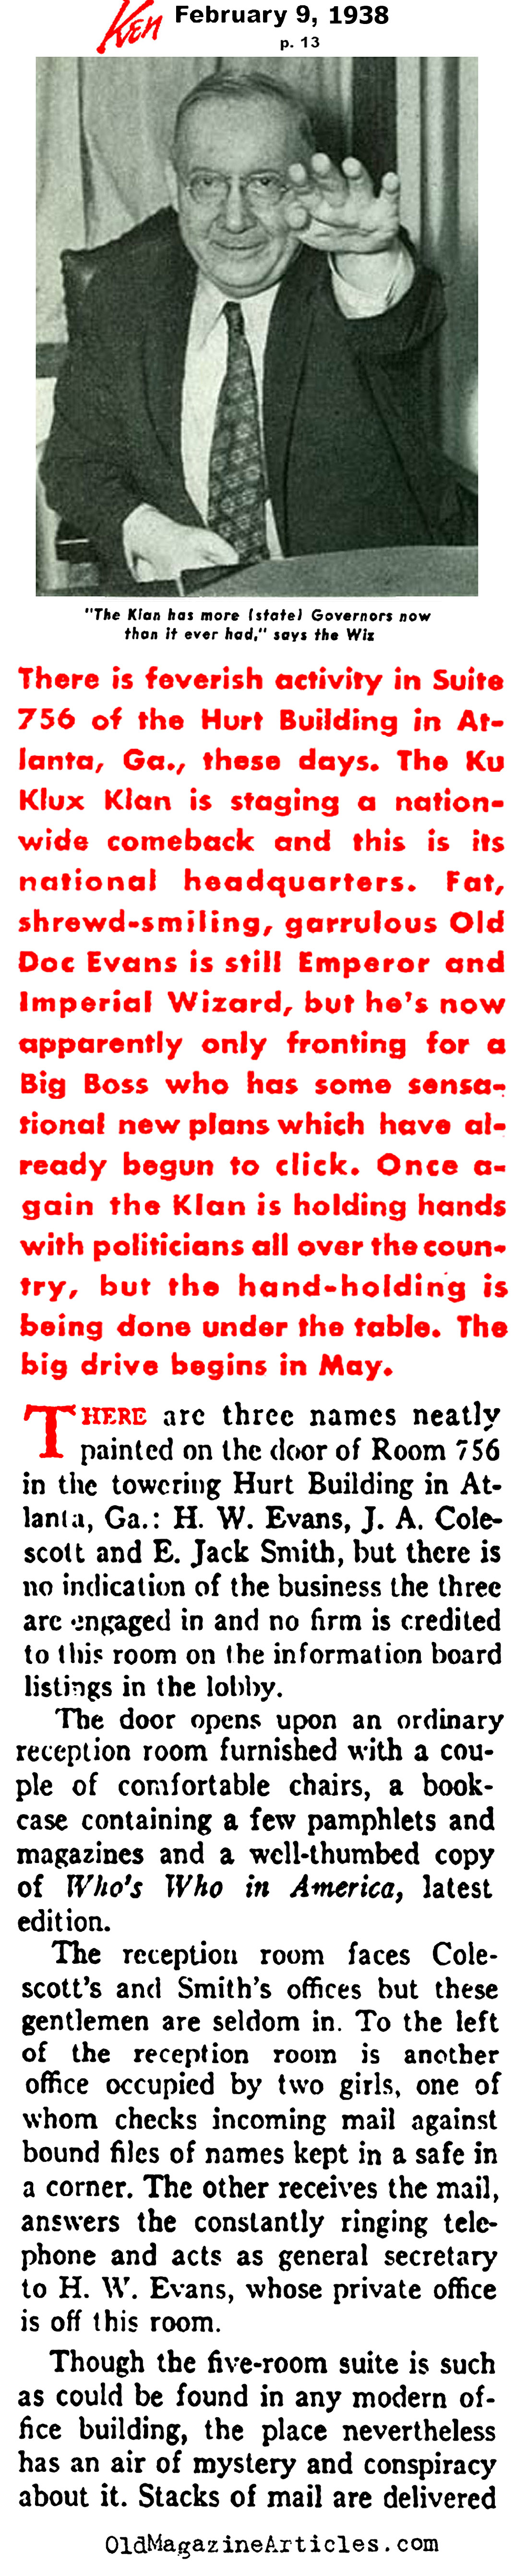 The Klan Gets Active  (Ken Magazine, 1938)